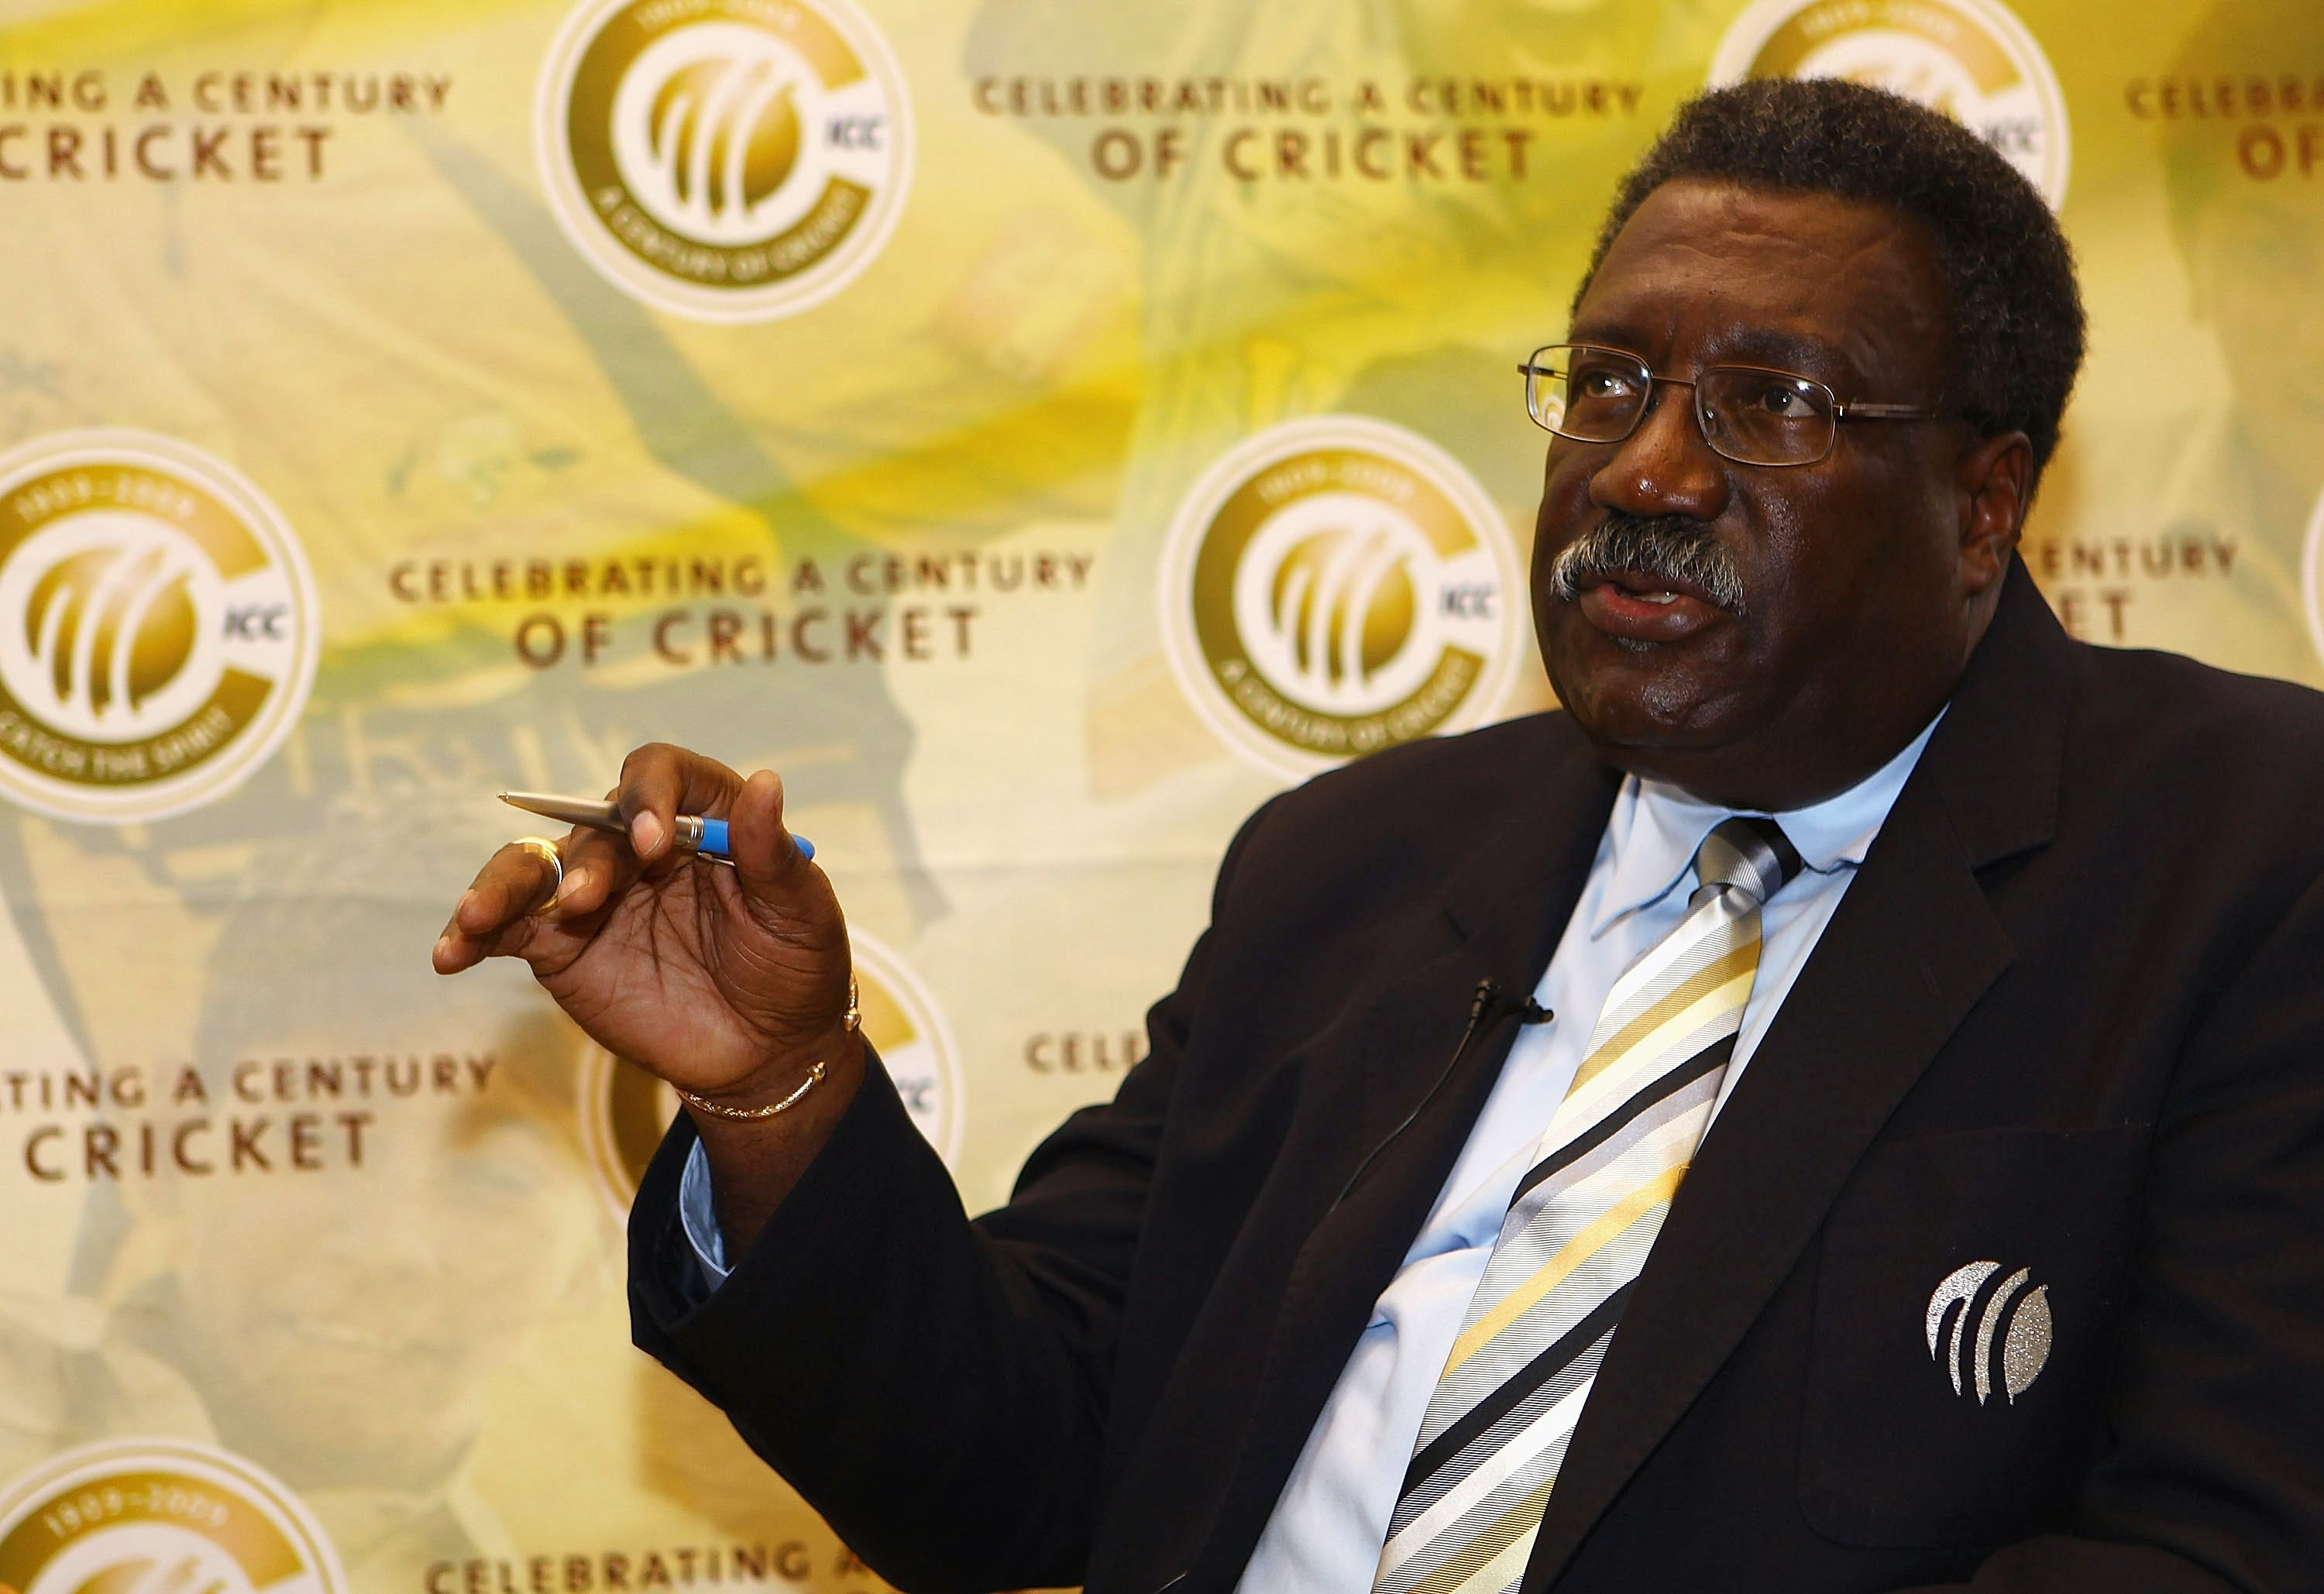 Clive Lloyd compares Chris Gayle to Sir Vivian Richards